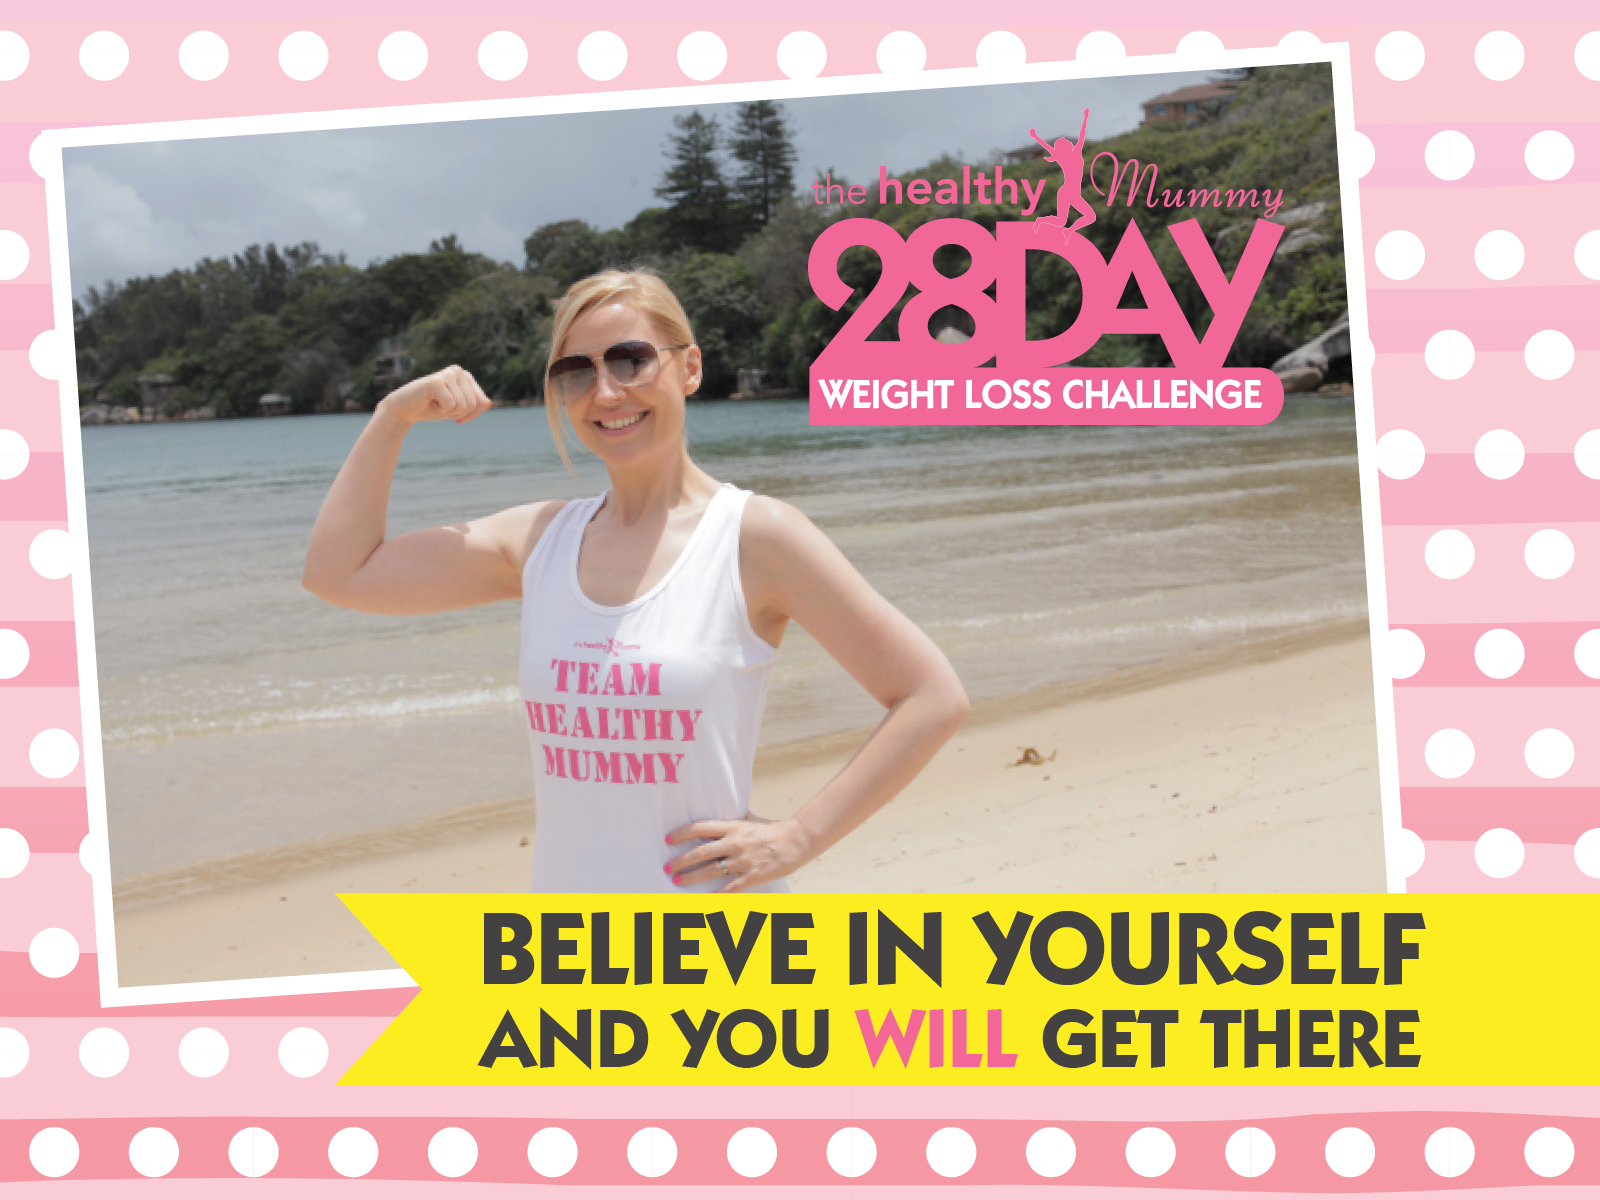 Feb challenge motivation - Rhian